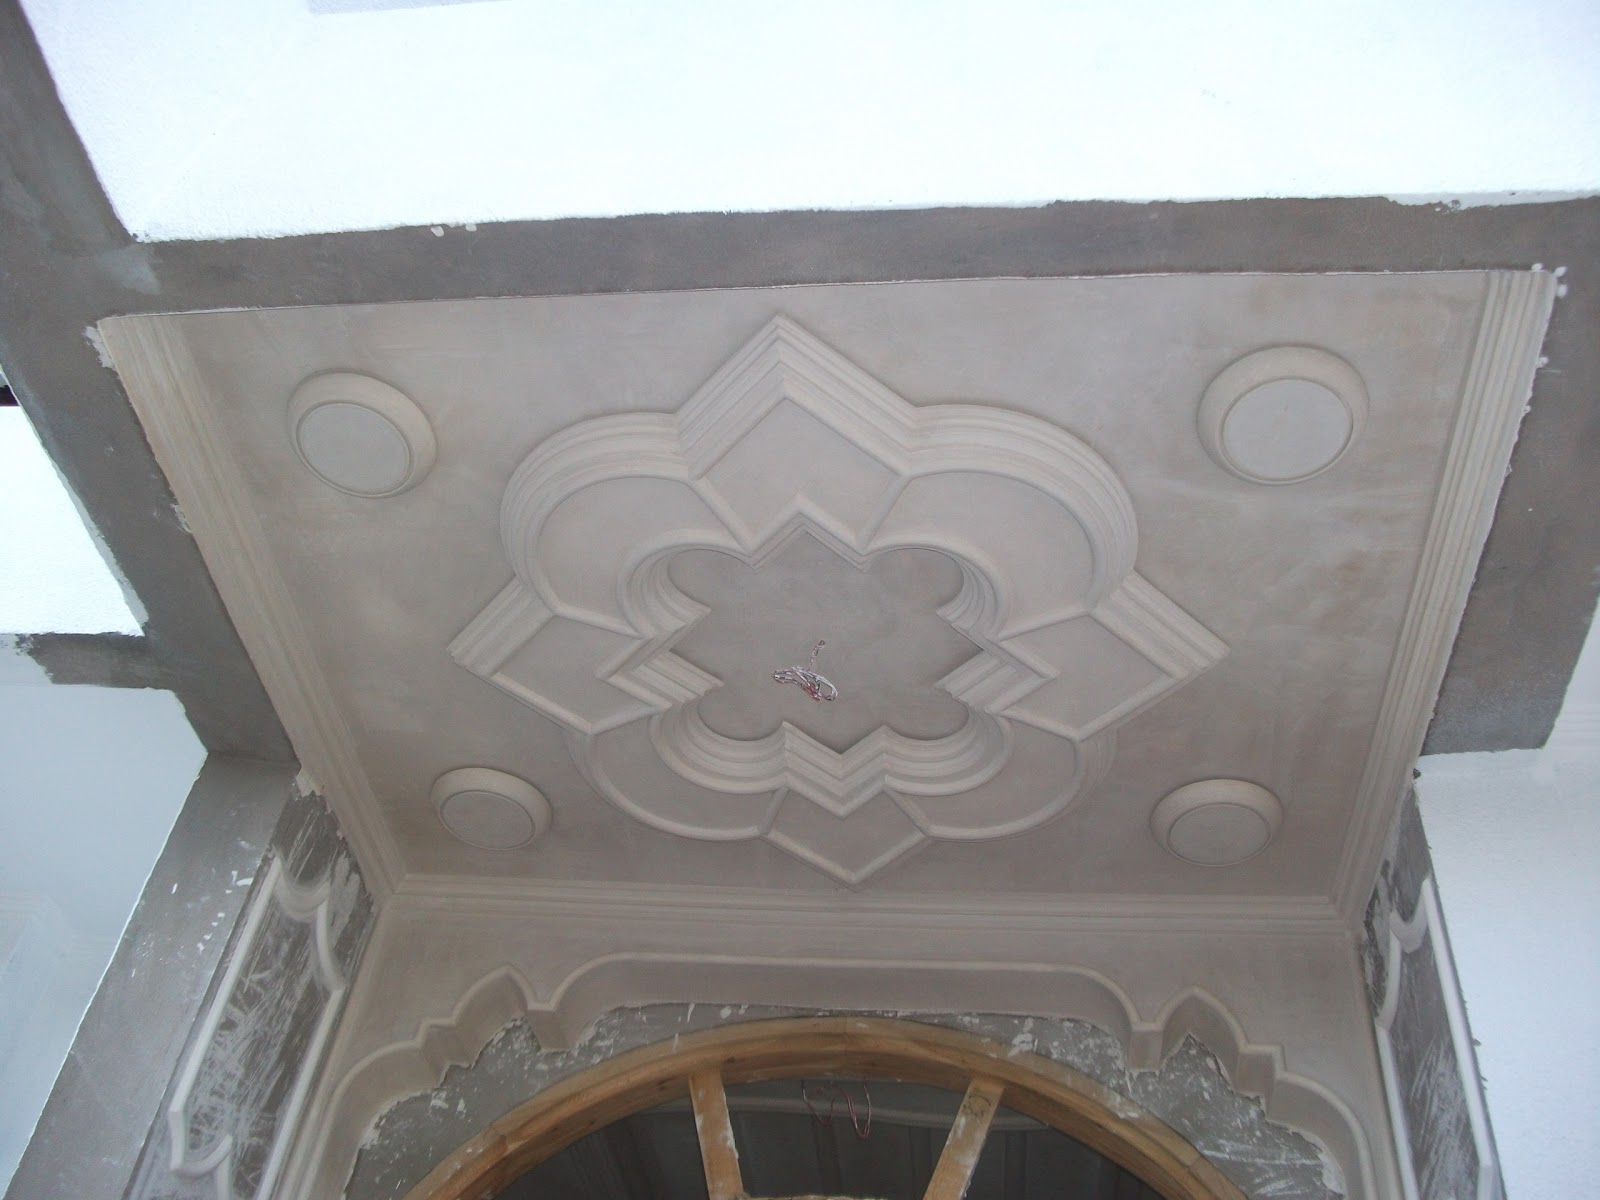 Decoration plafond platre decoration platre plafond - Decoration de plafond en platre ...